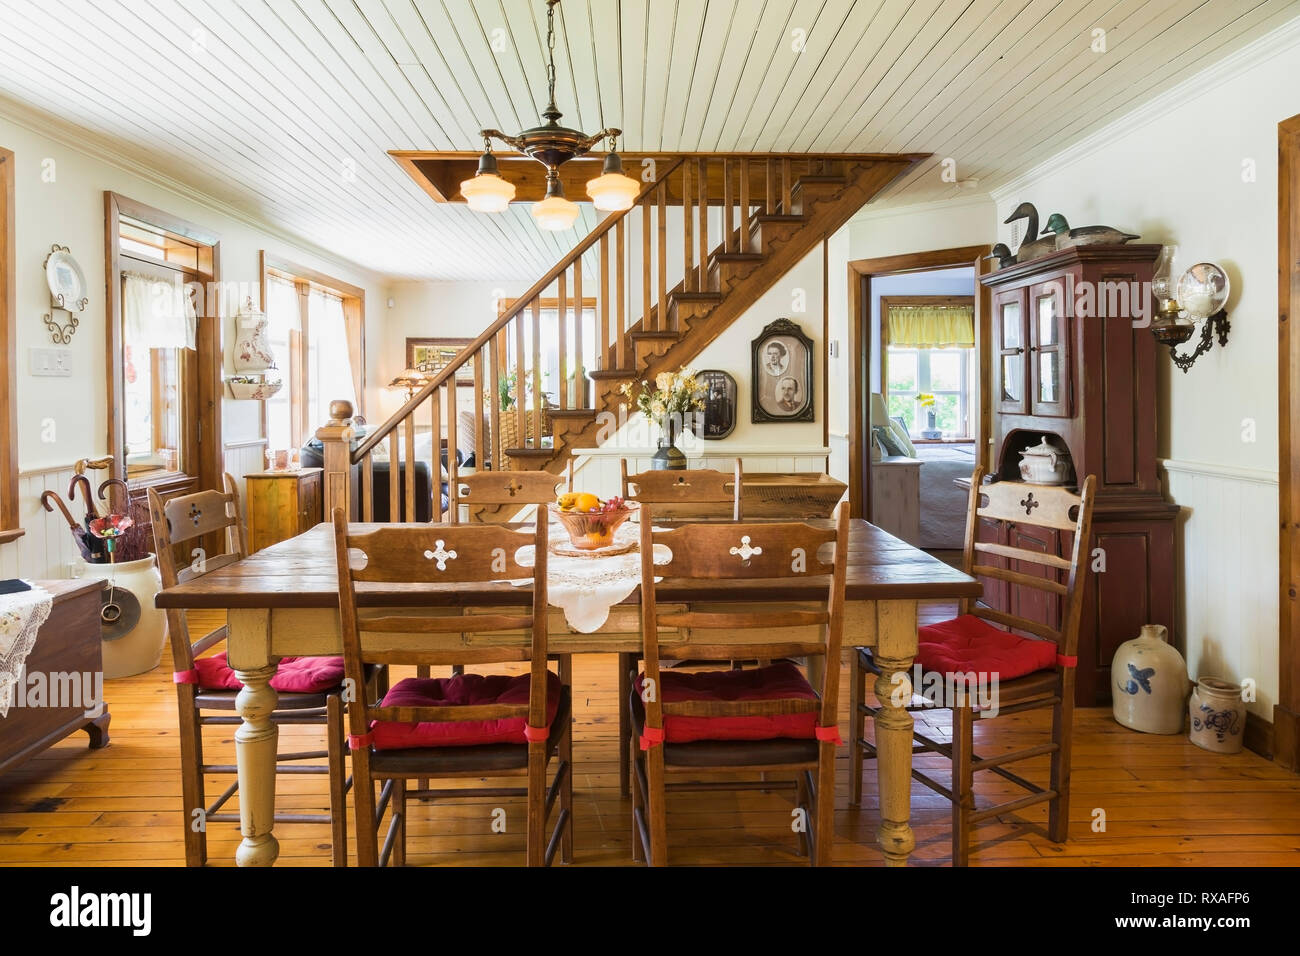 Cream and brown coloured wooden table and Lepine antique chairs with red cushions in dining room inside an old 1892 Canadiana cottage style home, Queb - Stock Image